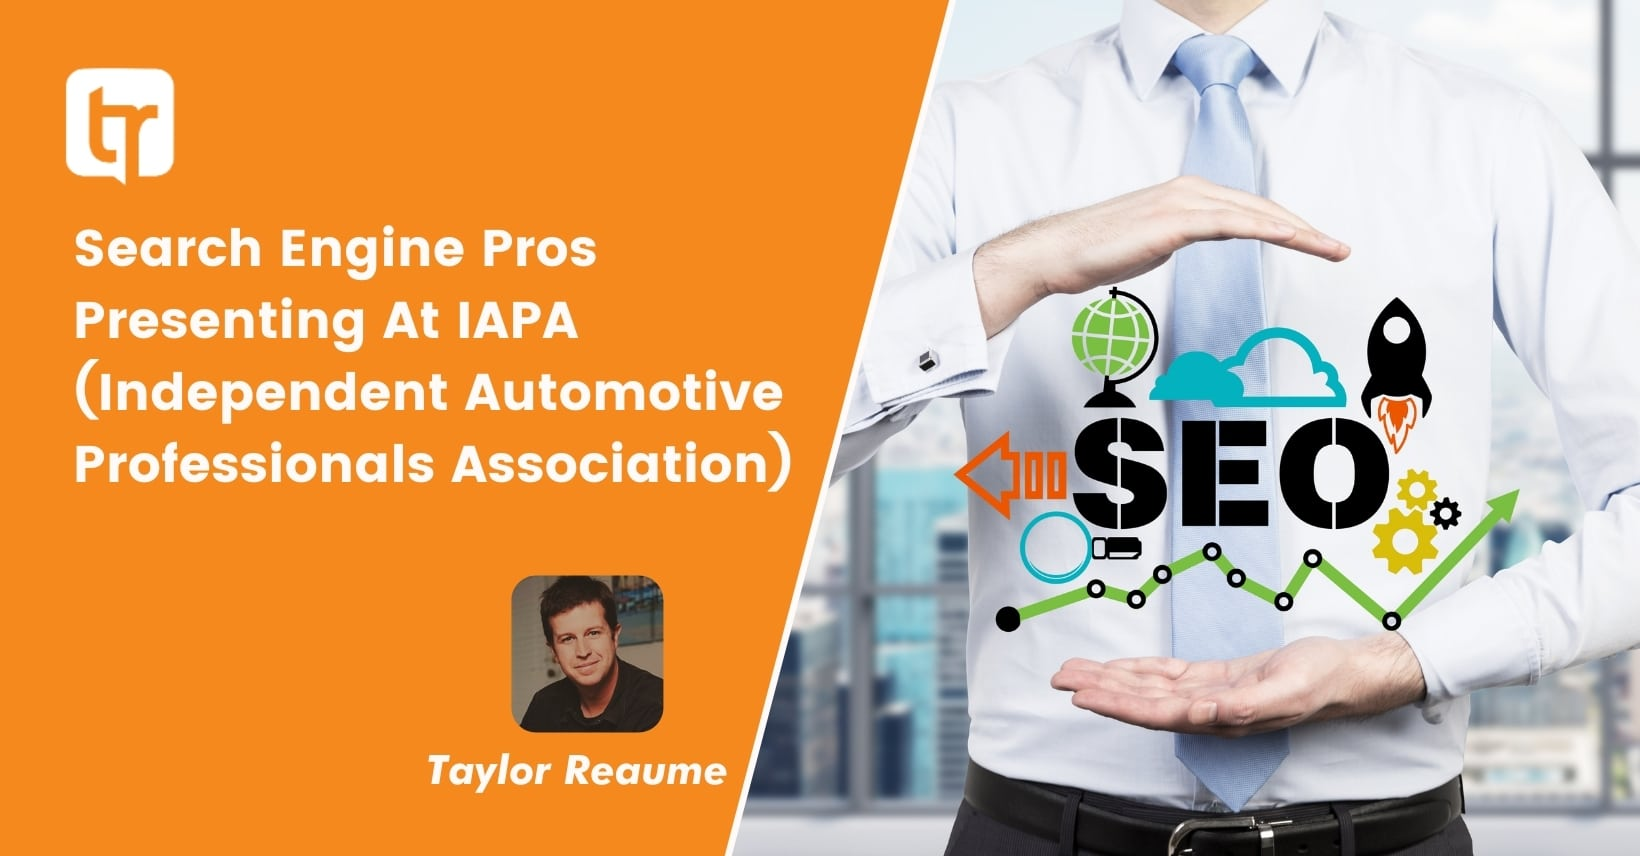 Search Engine Pros Presenting At IAPA (Independent Automotive Professionals Association)